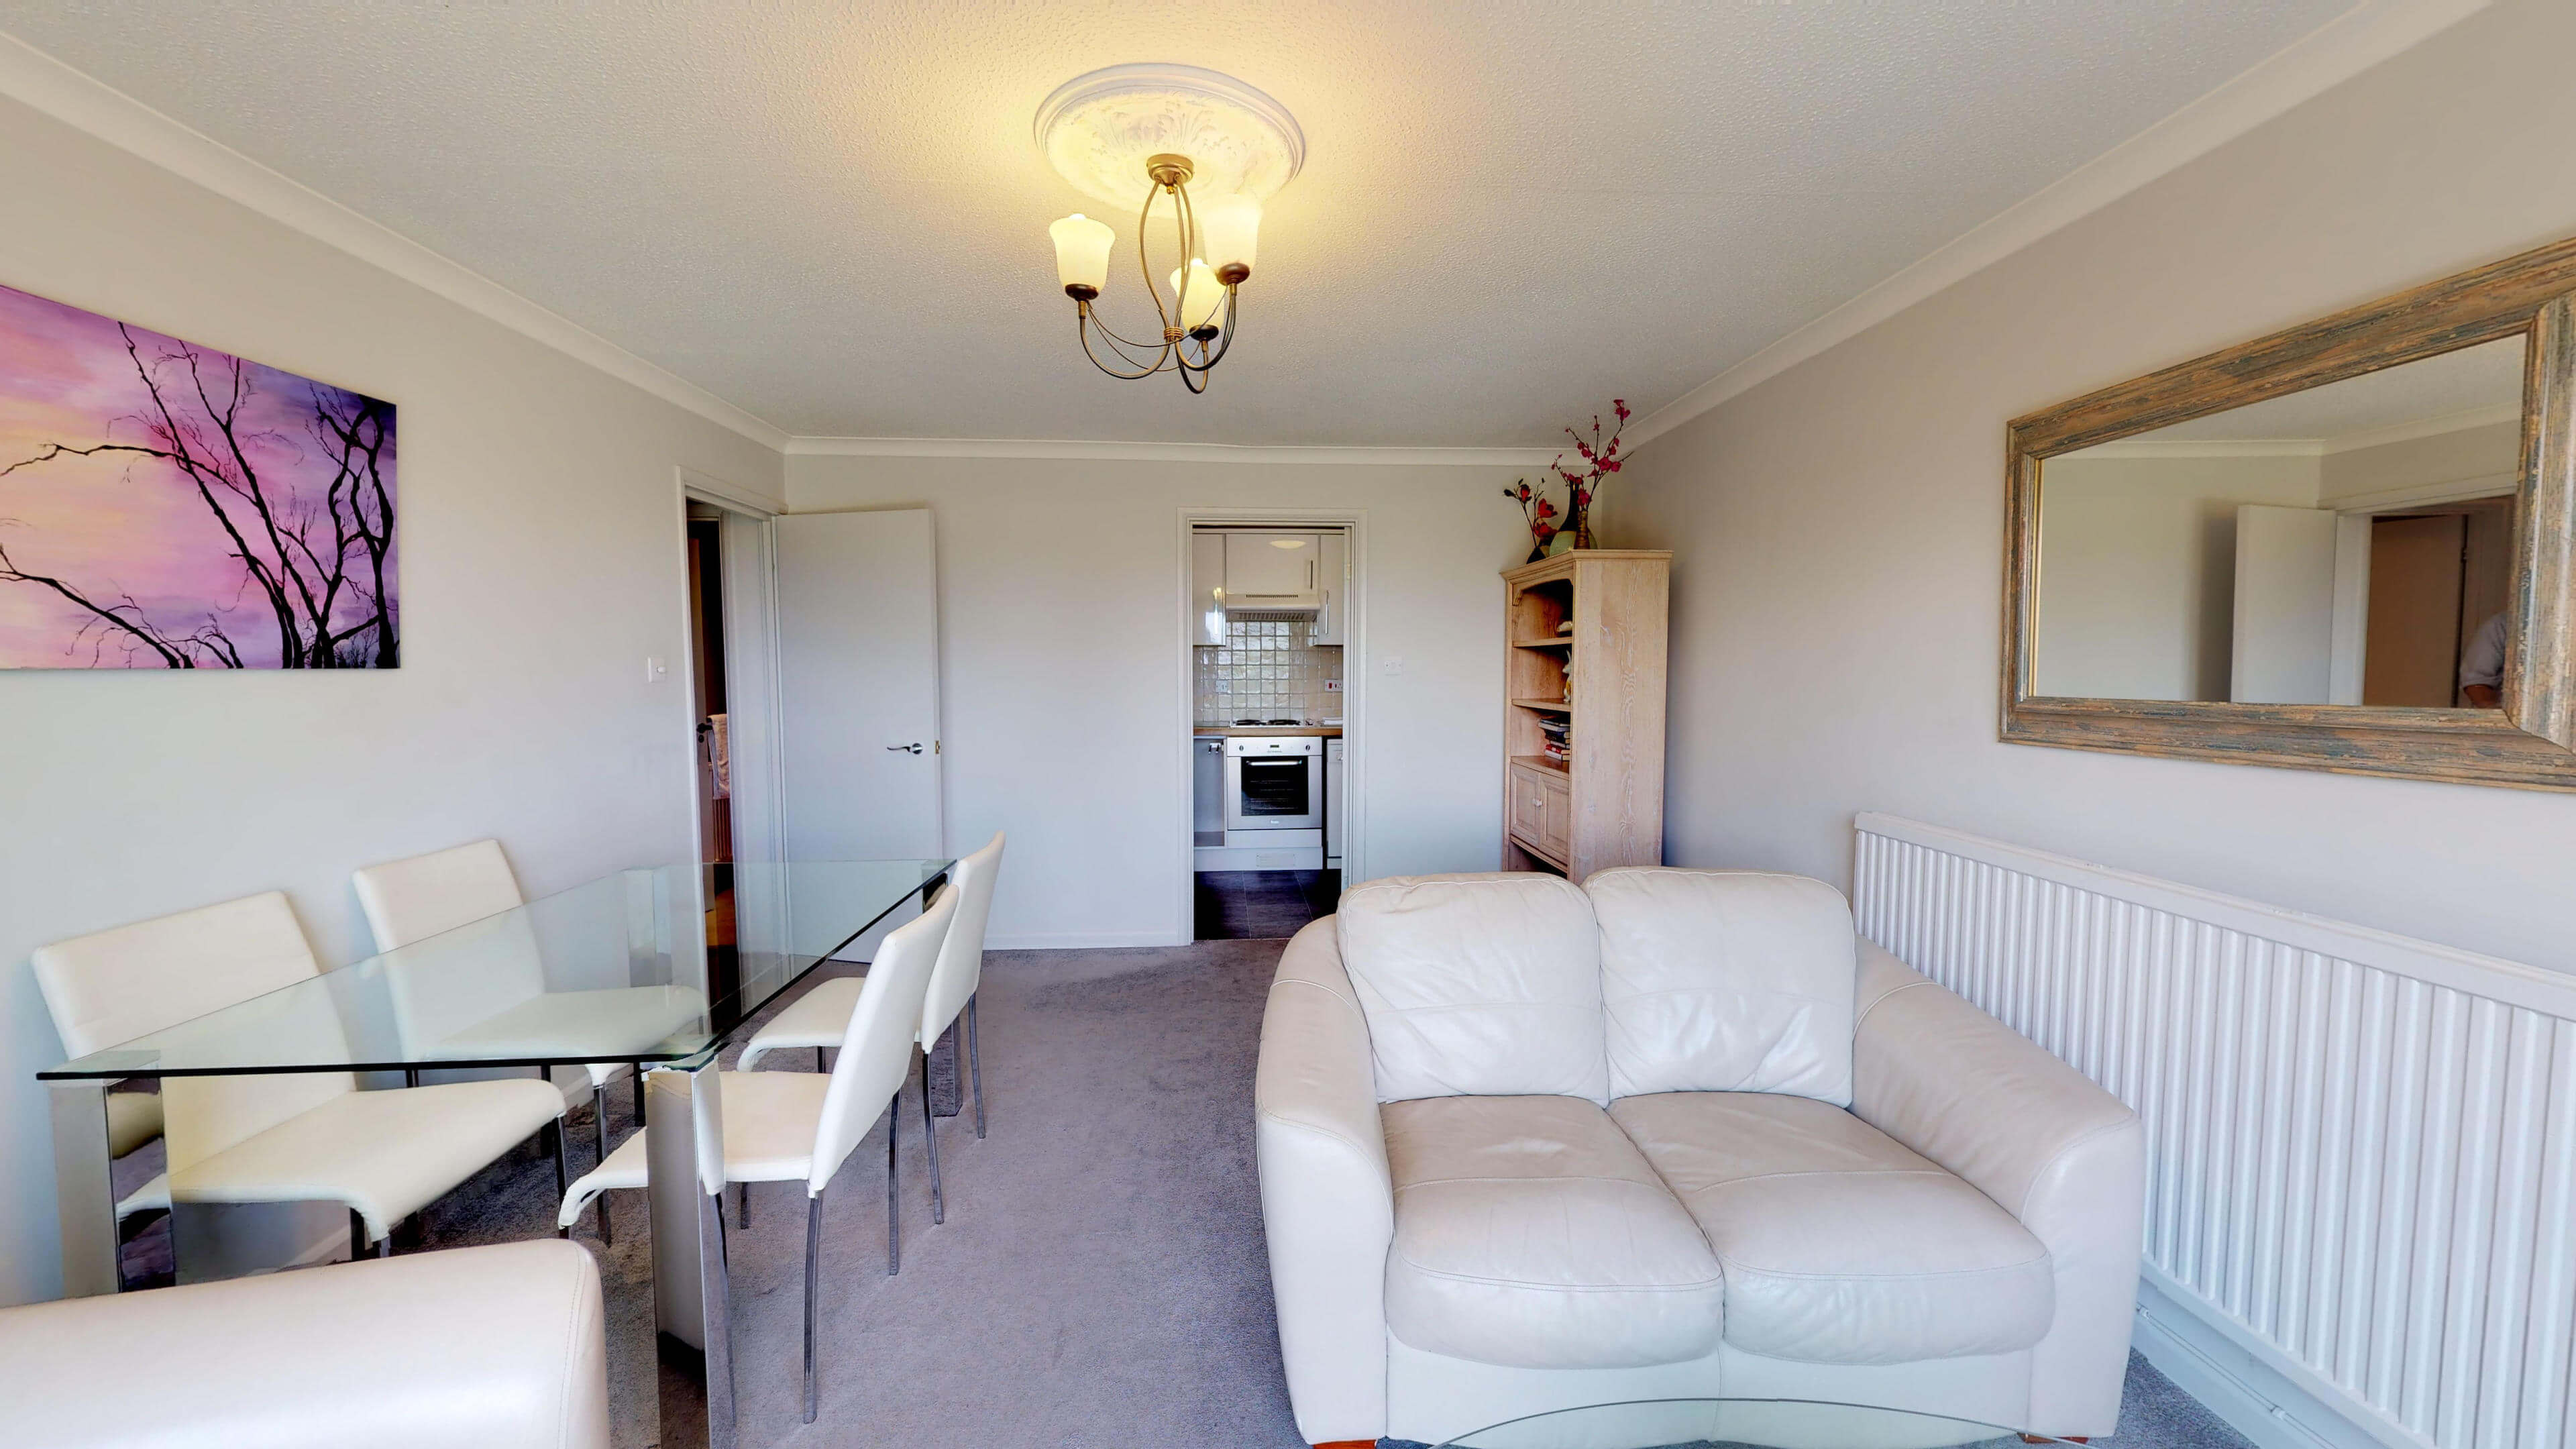 Short Stay Oxford The Firs Apartment 05232019 064806